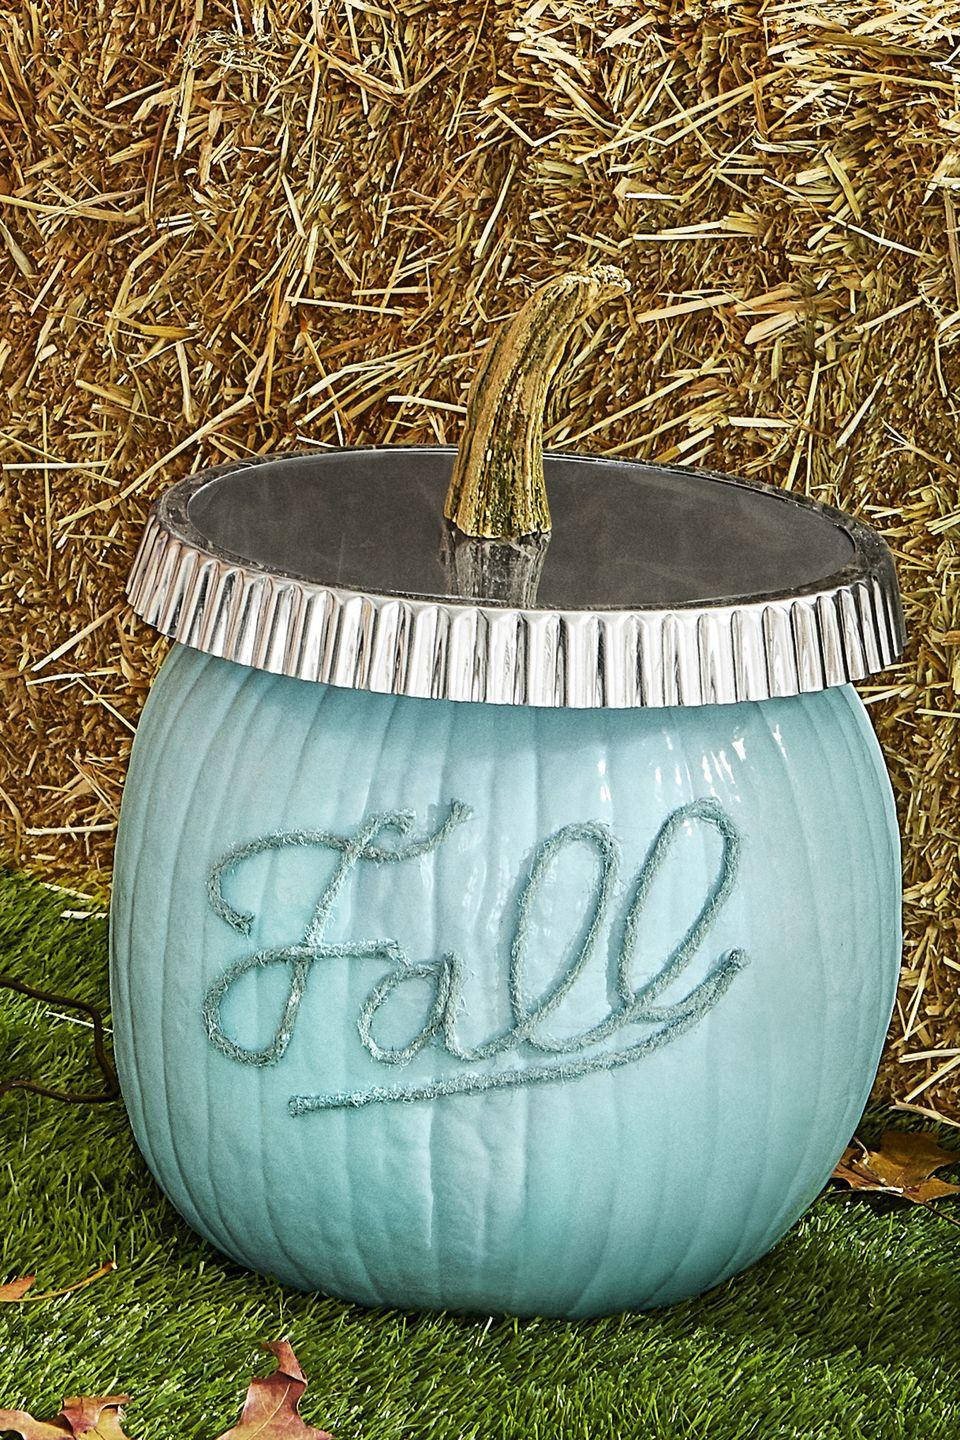 """<p>This pumpkin is the ultimate <a href=""""https://www.countryliving.com/diy-crafts/g1916/mason-jar-fall-crafts/"""" rel=""""nofollow noopener"""" target=""""_blank"""" data-ylk=""""slk:Mason jar craft"""" class=""""link rapid-noclick-resp"""">Mason jar craft</a>! Start by removing the stem of a medium pumpkin—but don't throw it away. Next, use wired twine to spell out """"fall"""" and hot-glue to the pumpkin. Paint the pumpkin and twine with light blue craft paint. Make sure it dries completely. Lastly, place a nine-to 10-inch tart pan upside down on the pumpkin. Hot-glue the reserved stem to the center of the pan. </p>"""